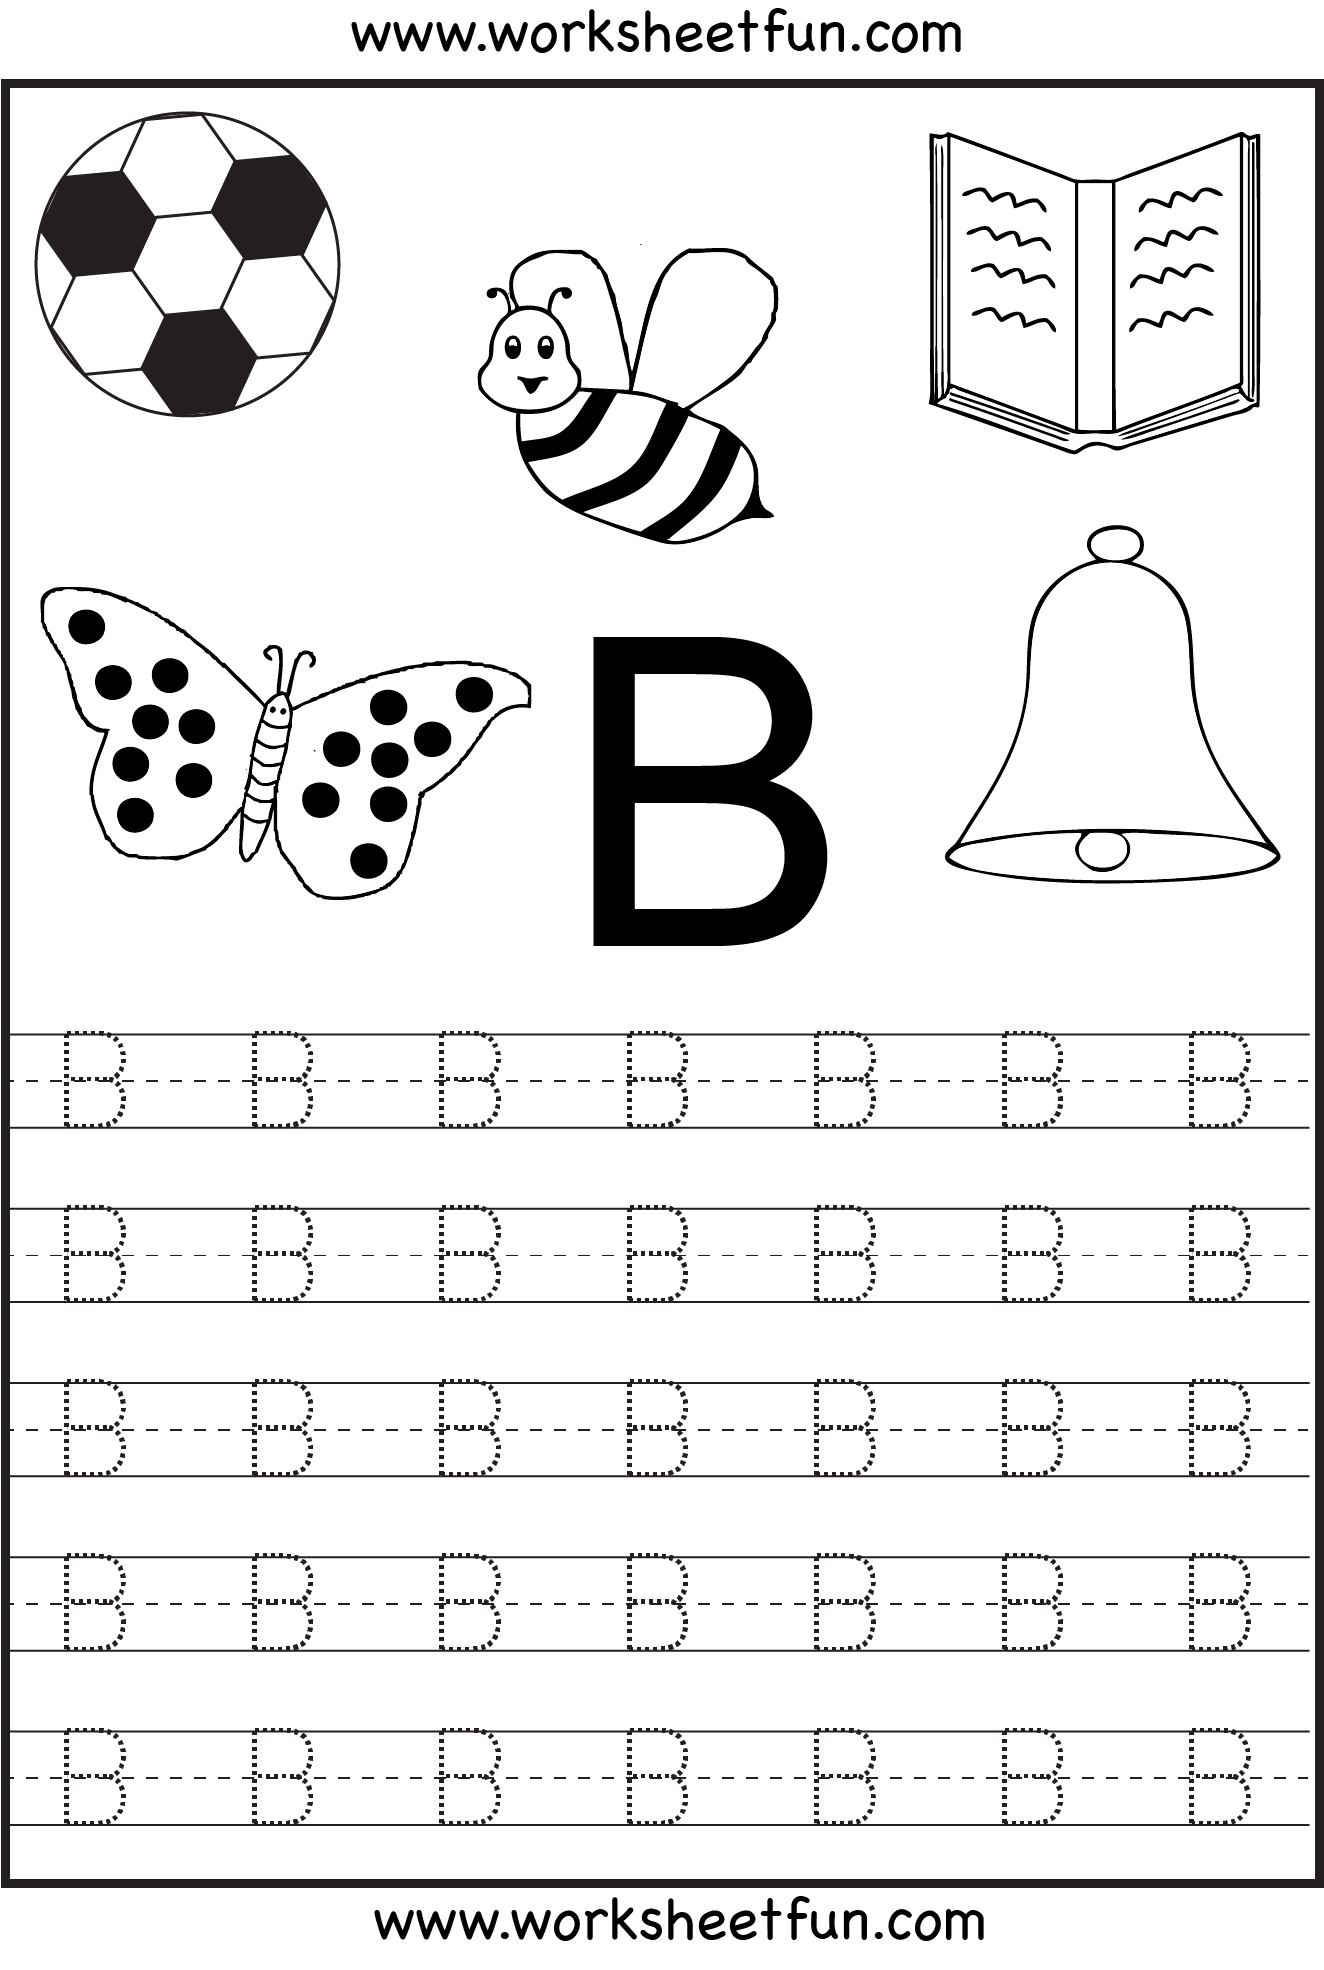 Worksheet Preschool Printable Tracing Worksheets free printable tracing letter g worksheets for preschool kindergarten 26 worksheets